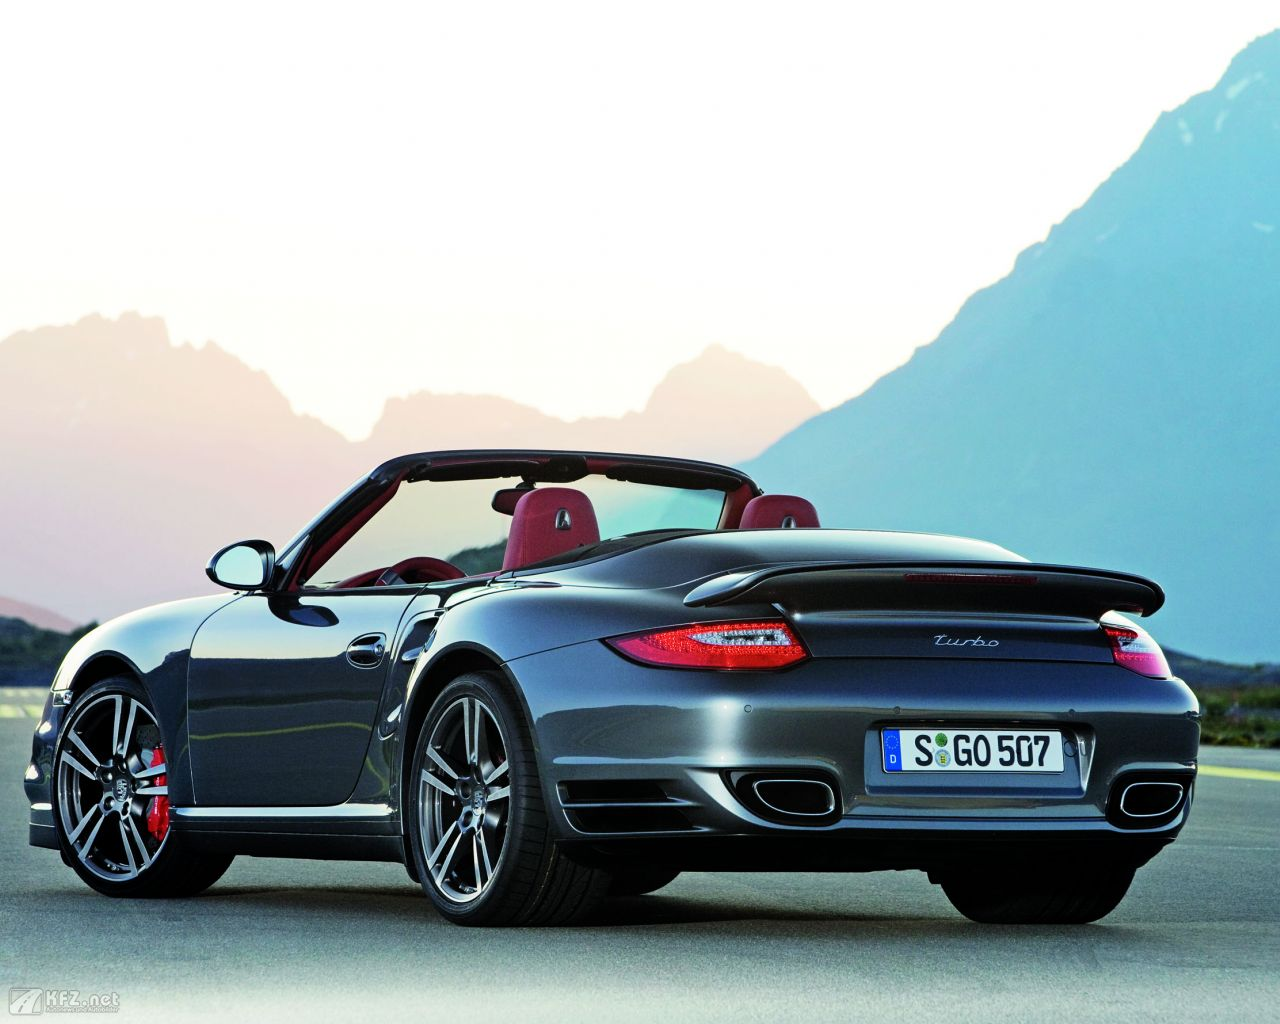 porsche-911-turbo-coupe-1280x1024-3